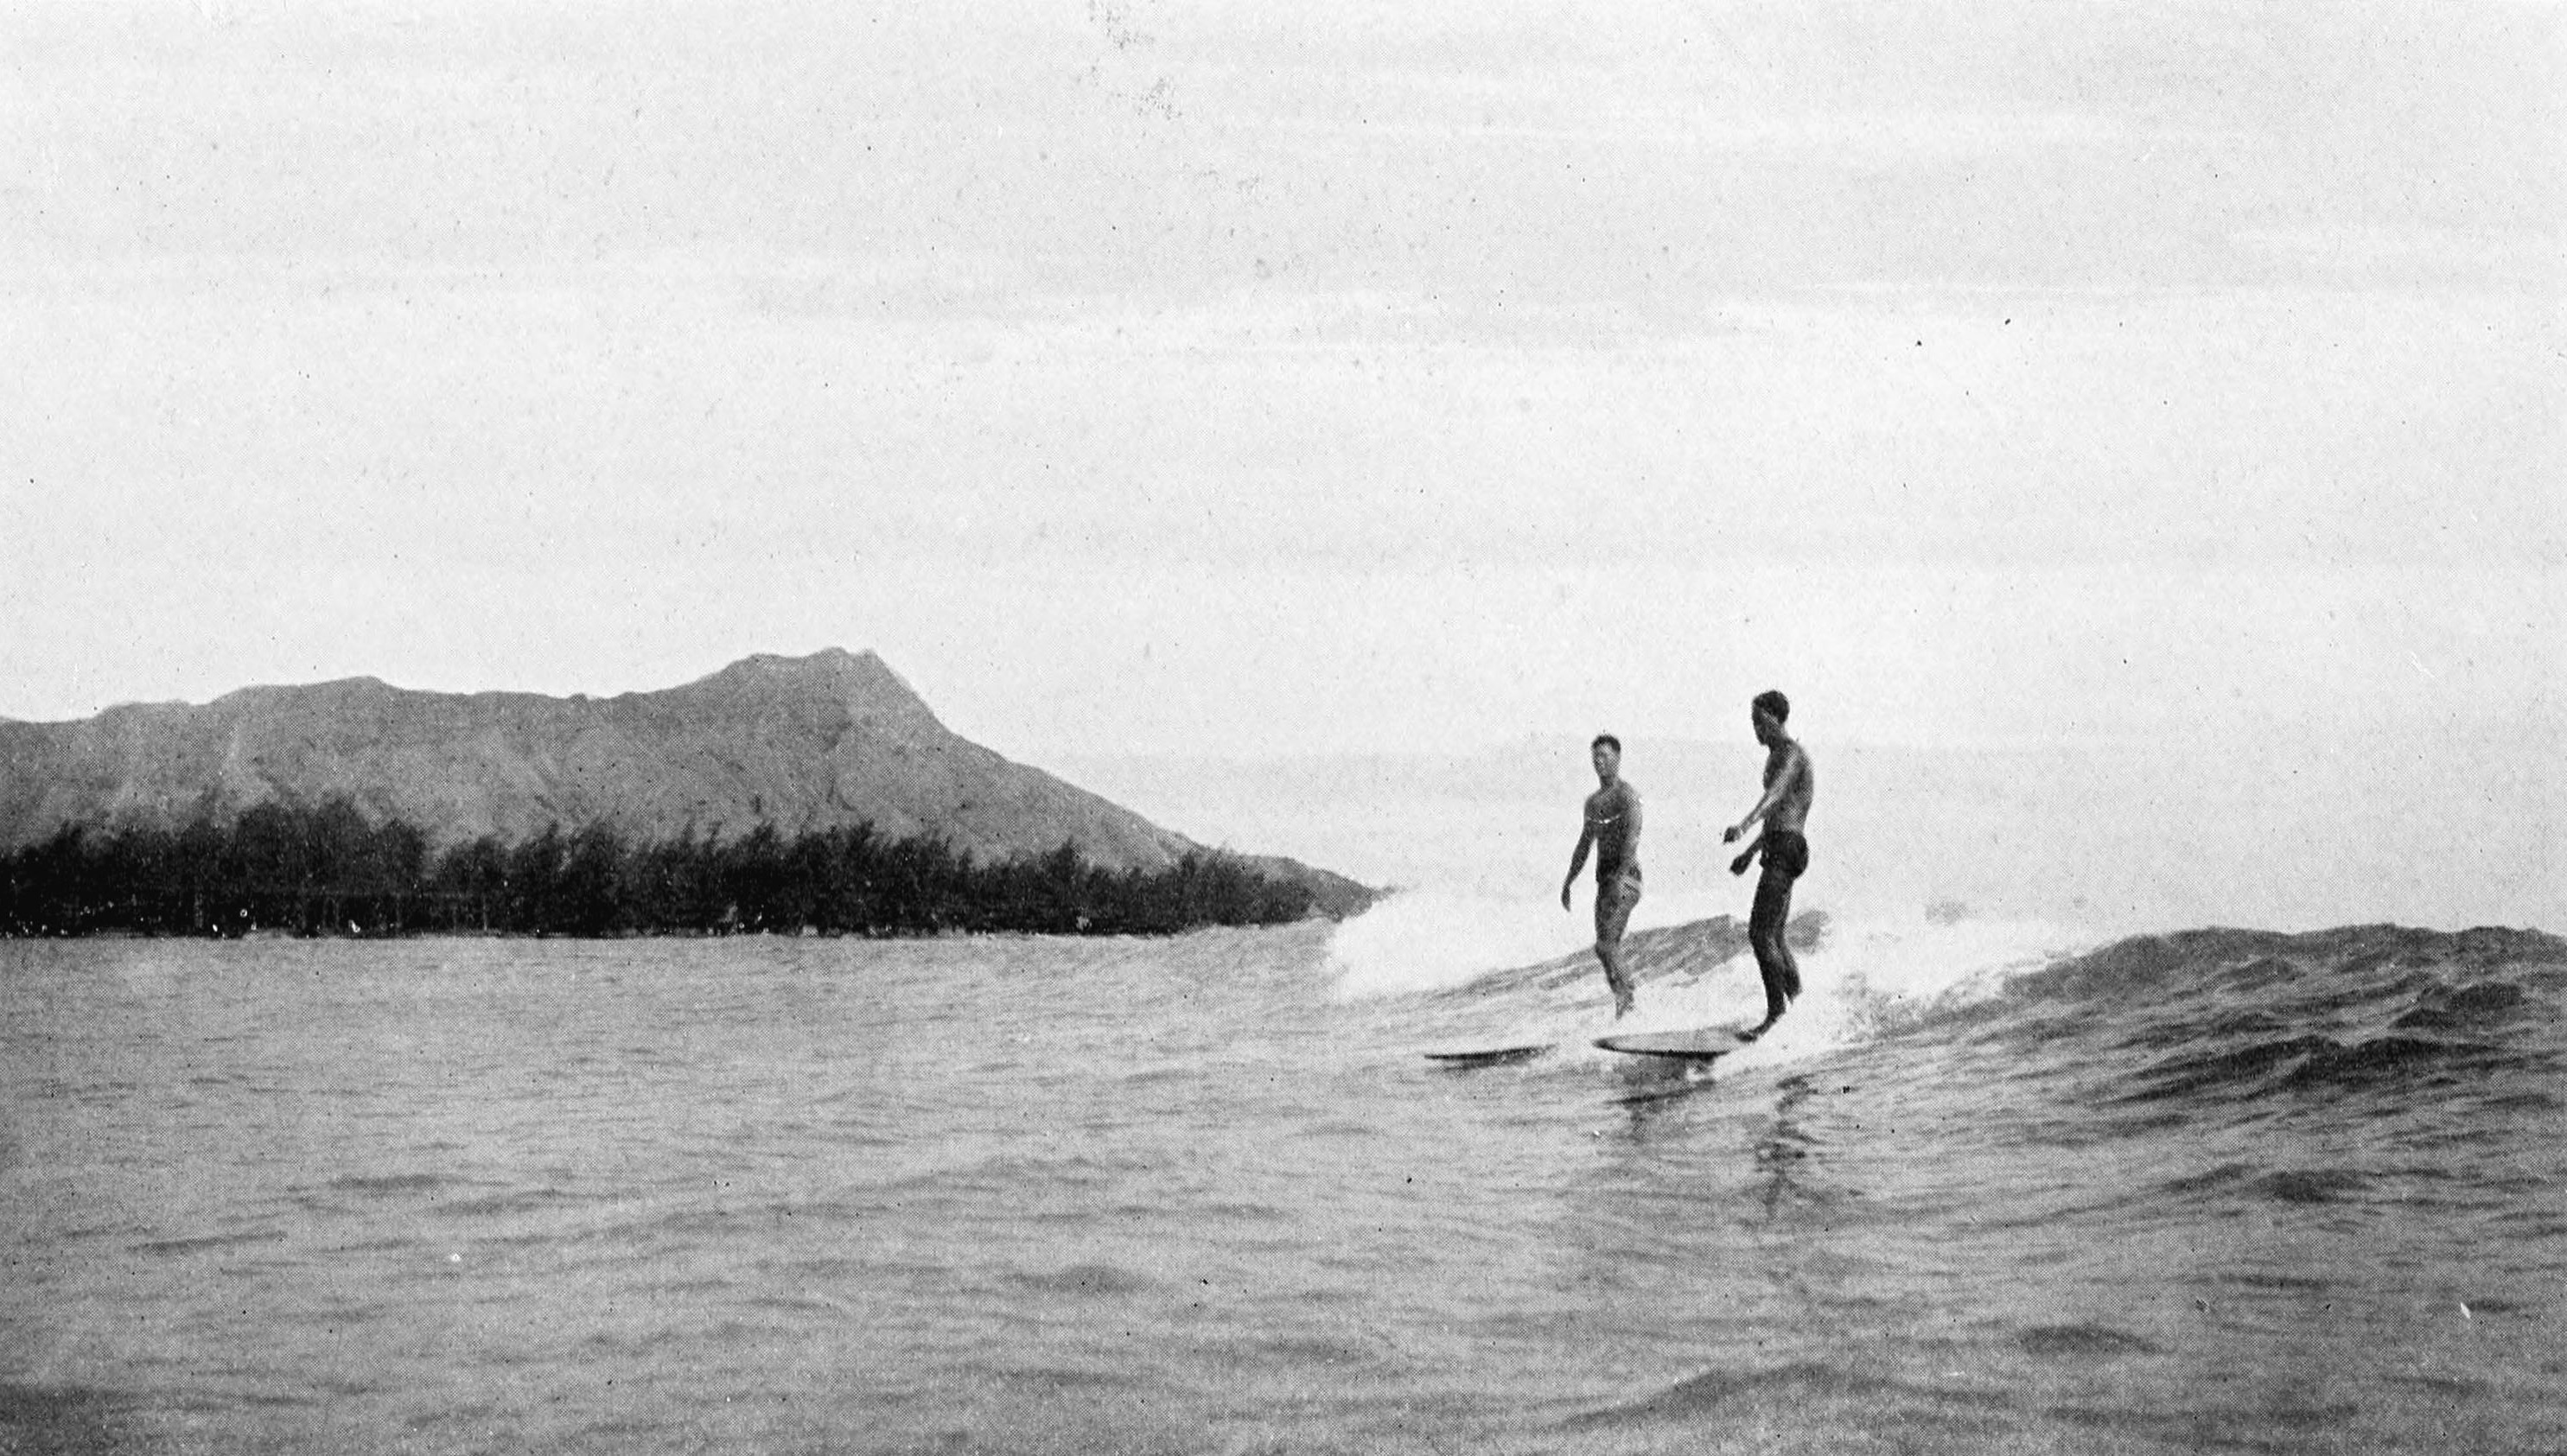 [Surfing at Waikīkī, 1921] At the left is Diamond Head. From Collier's New Encyclopedia.